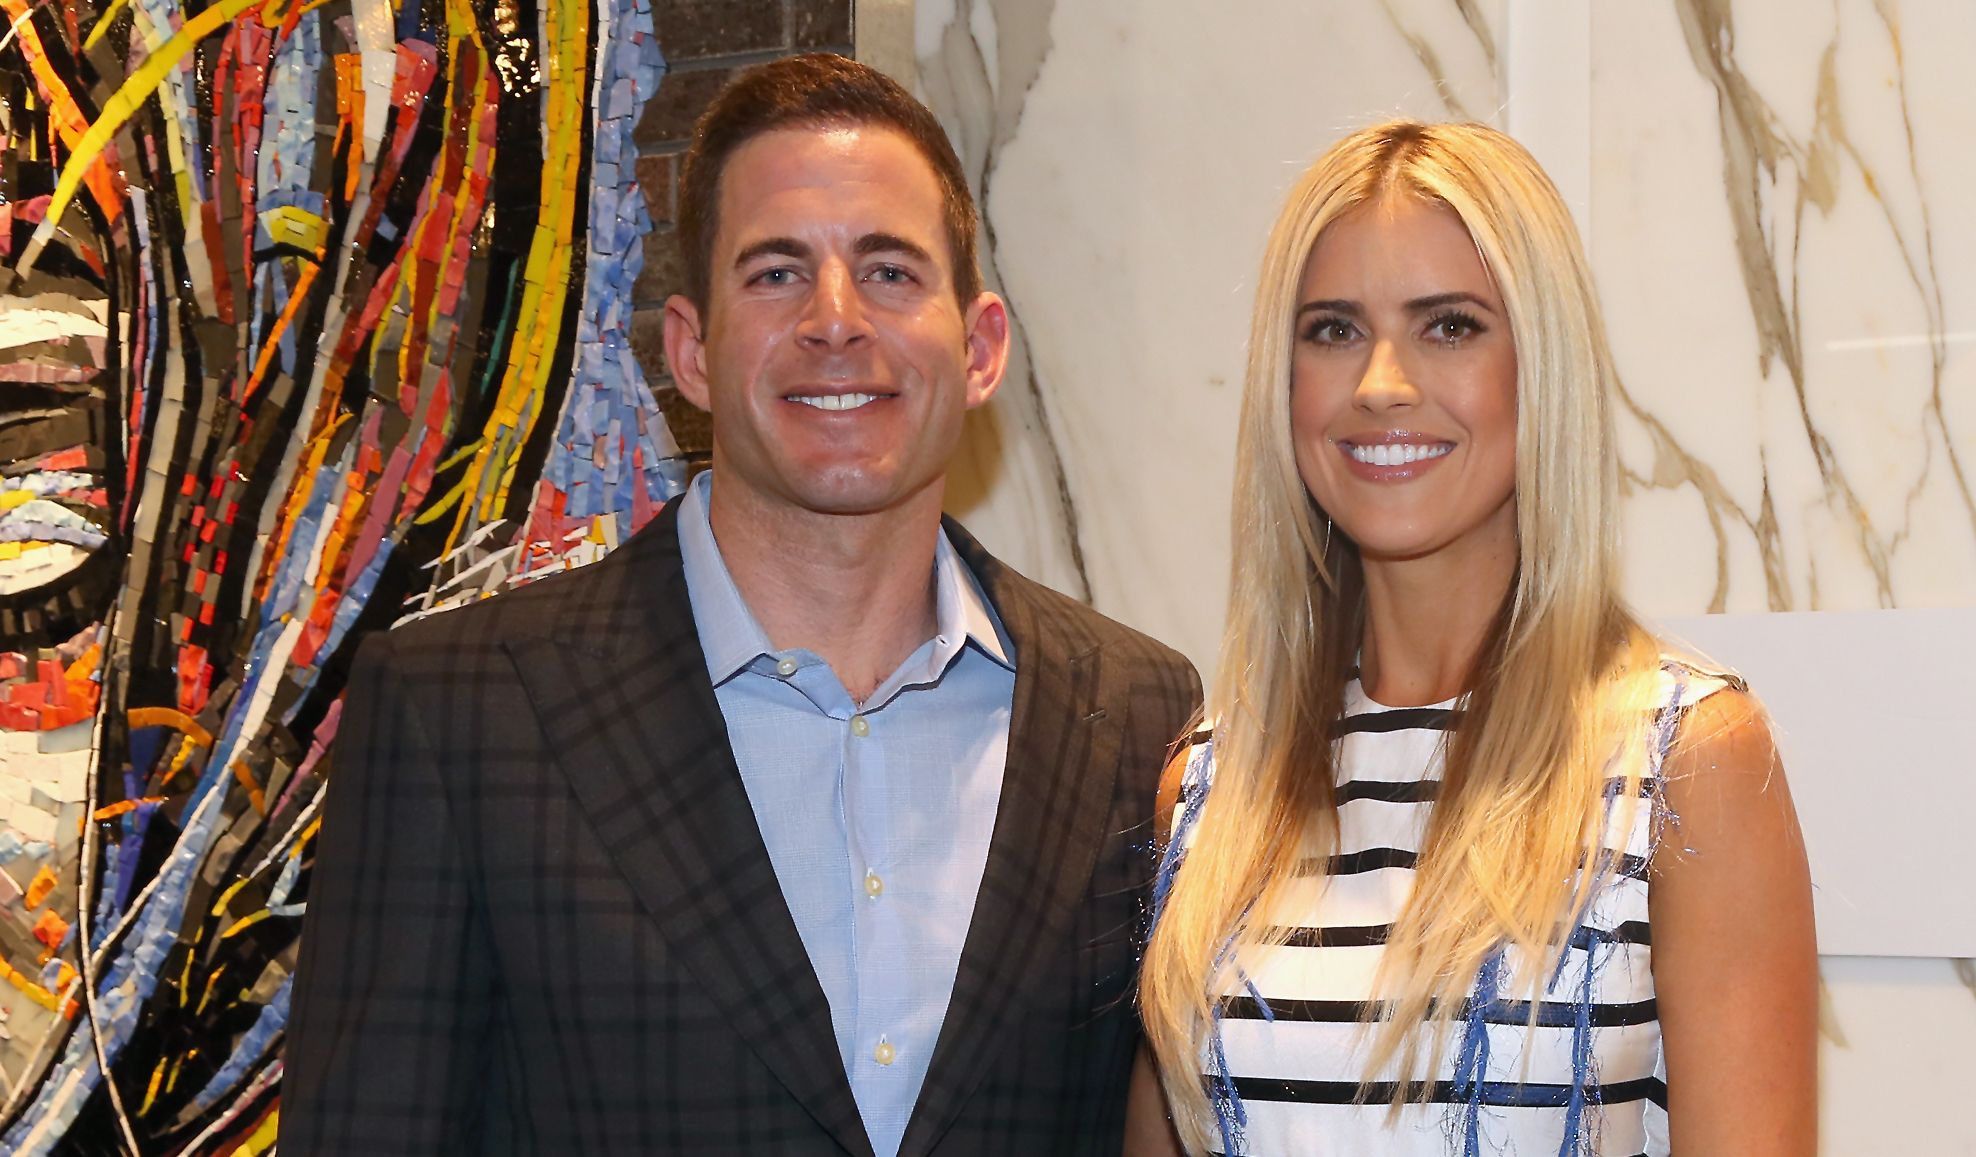 Tarek El Moussa Gets into Dirty Details About His Divorce